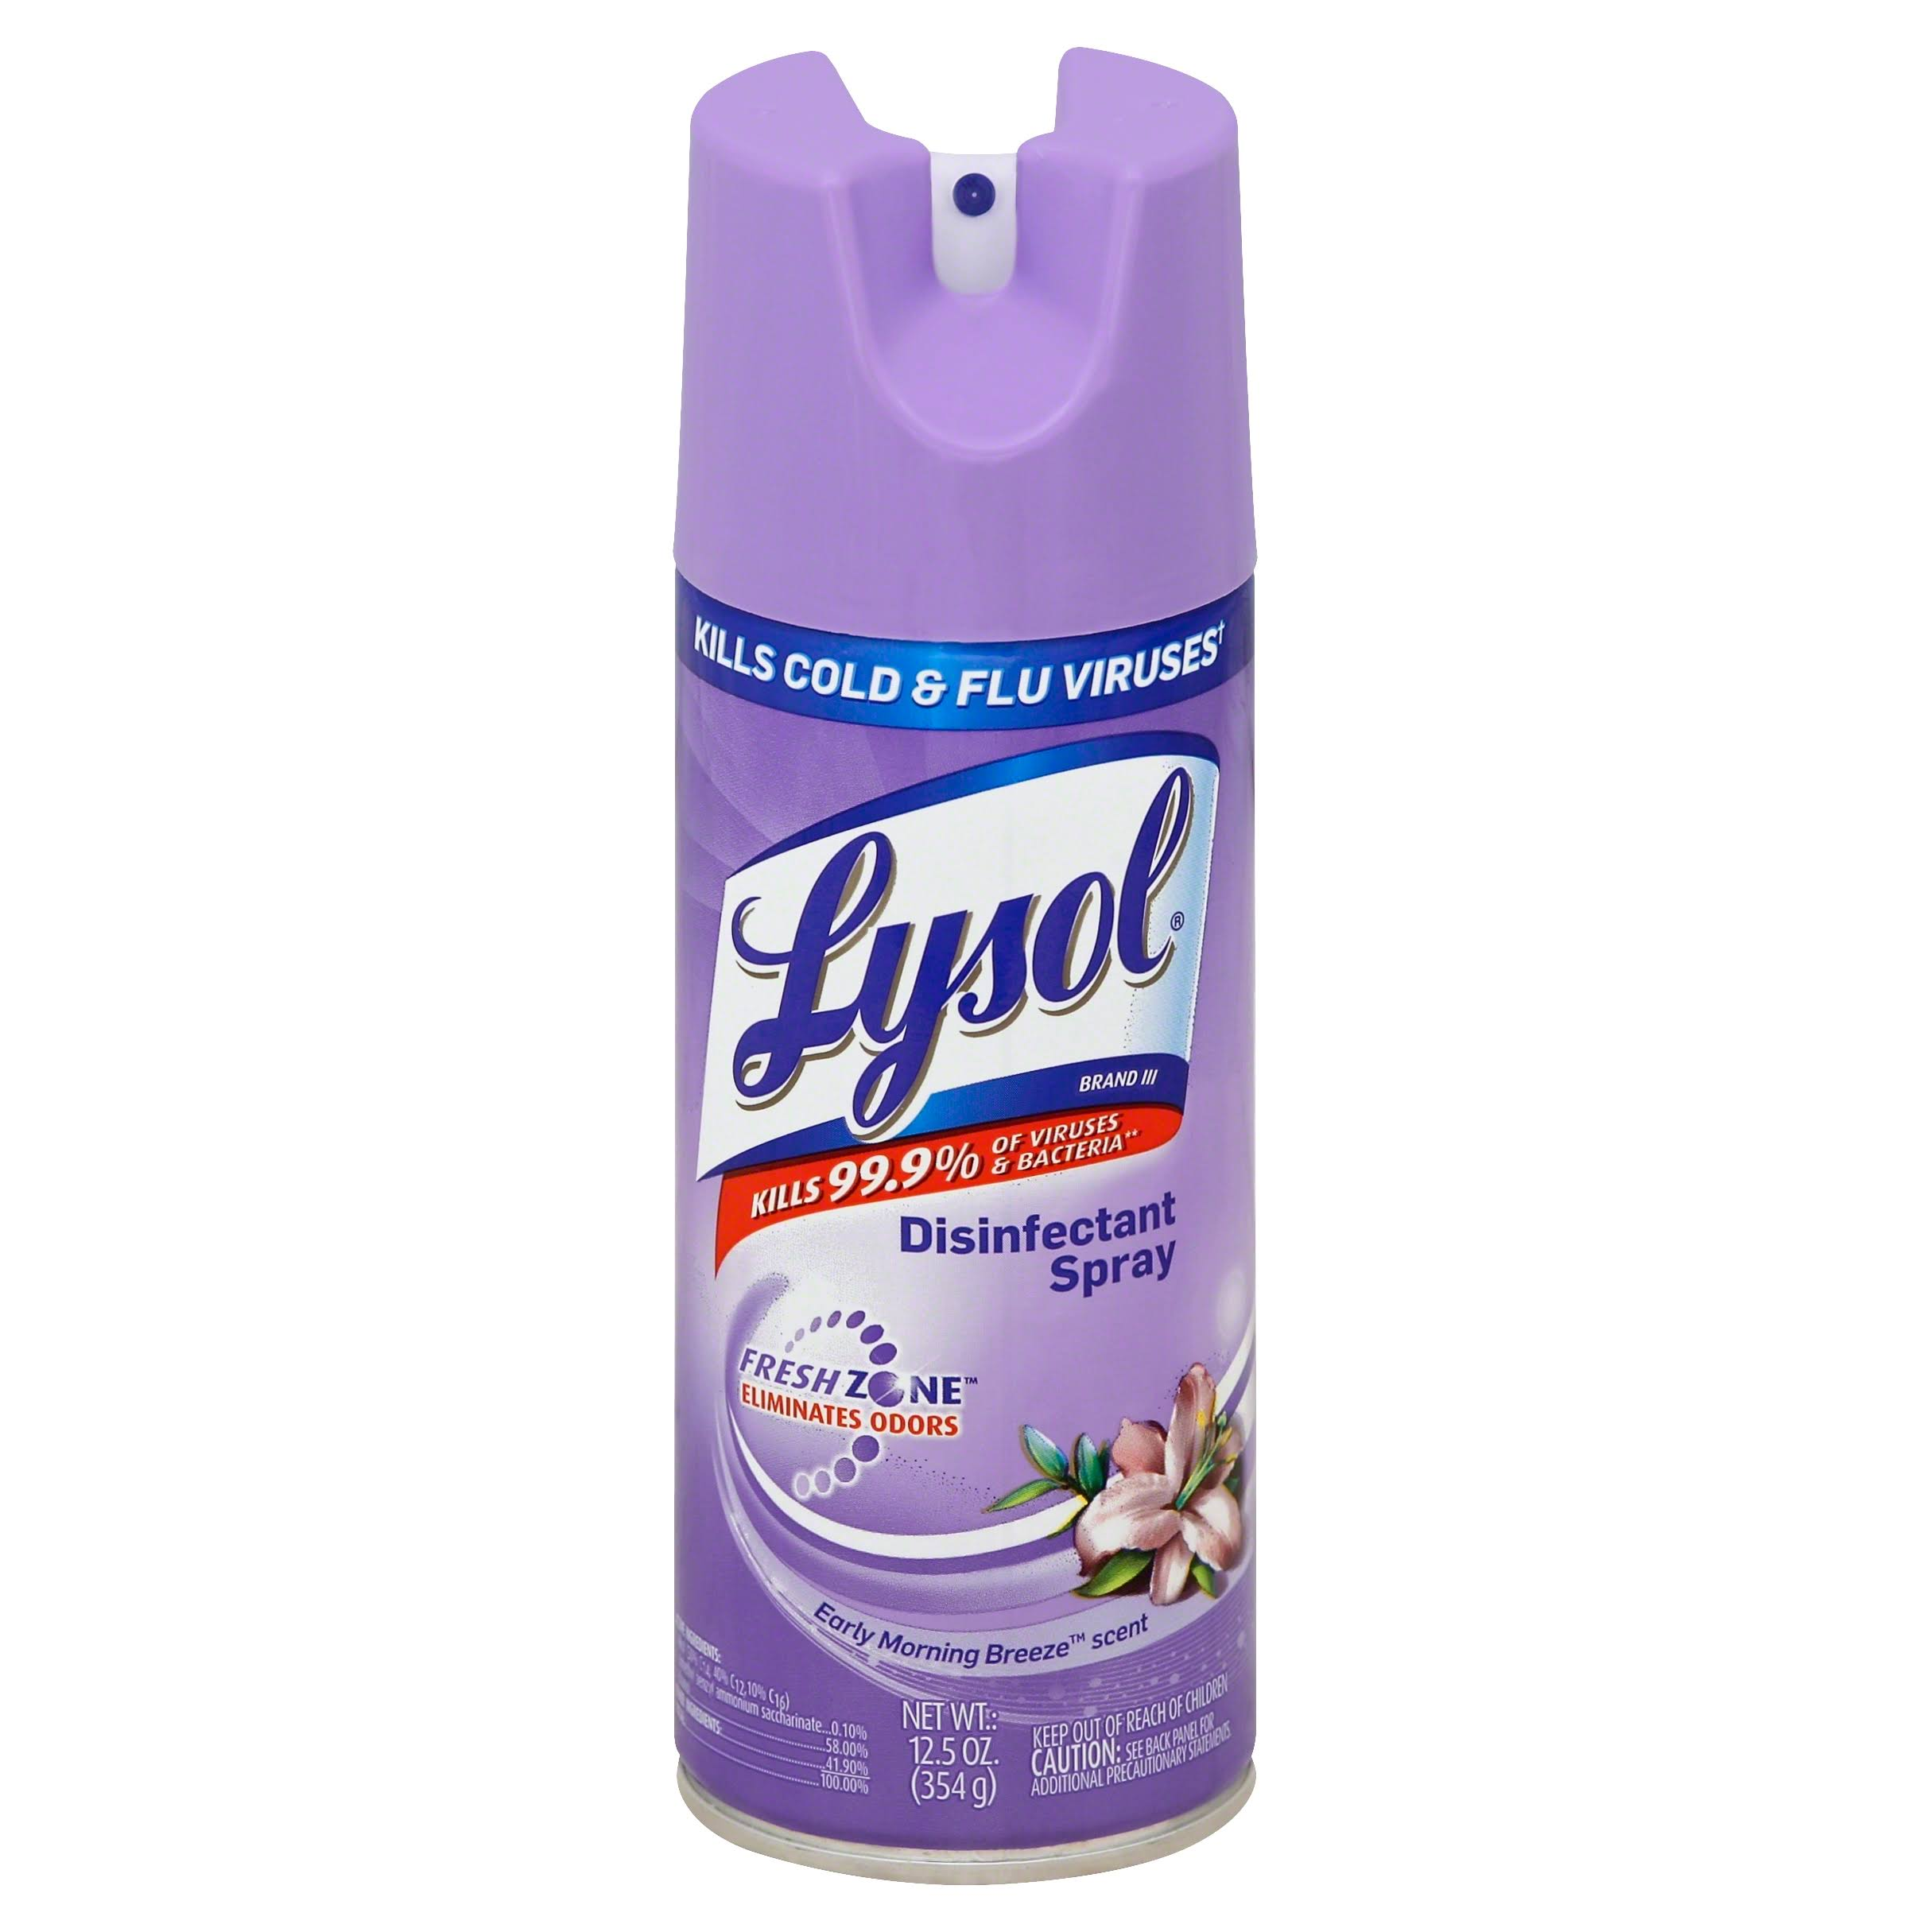 Lysol Disinfectant Spray - Early Morning Breeze Scent